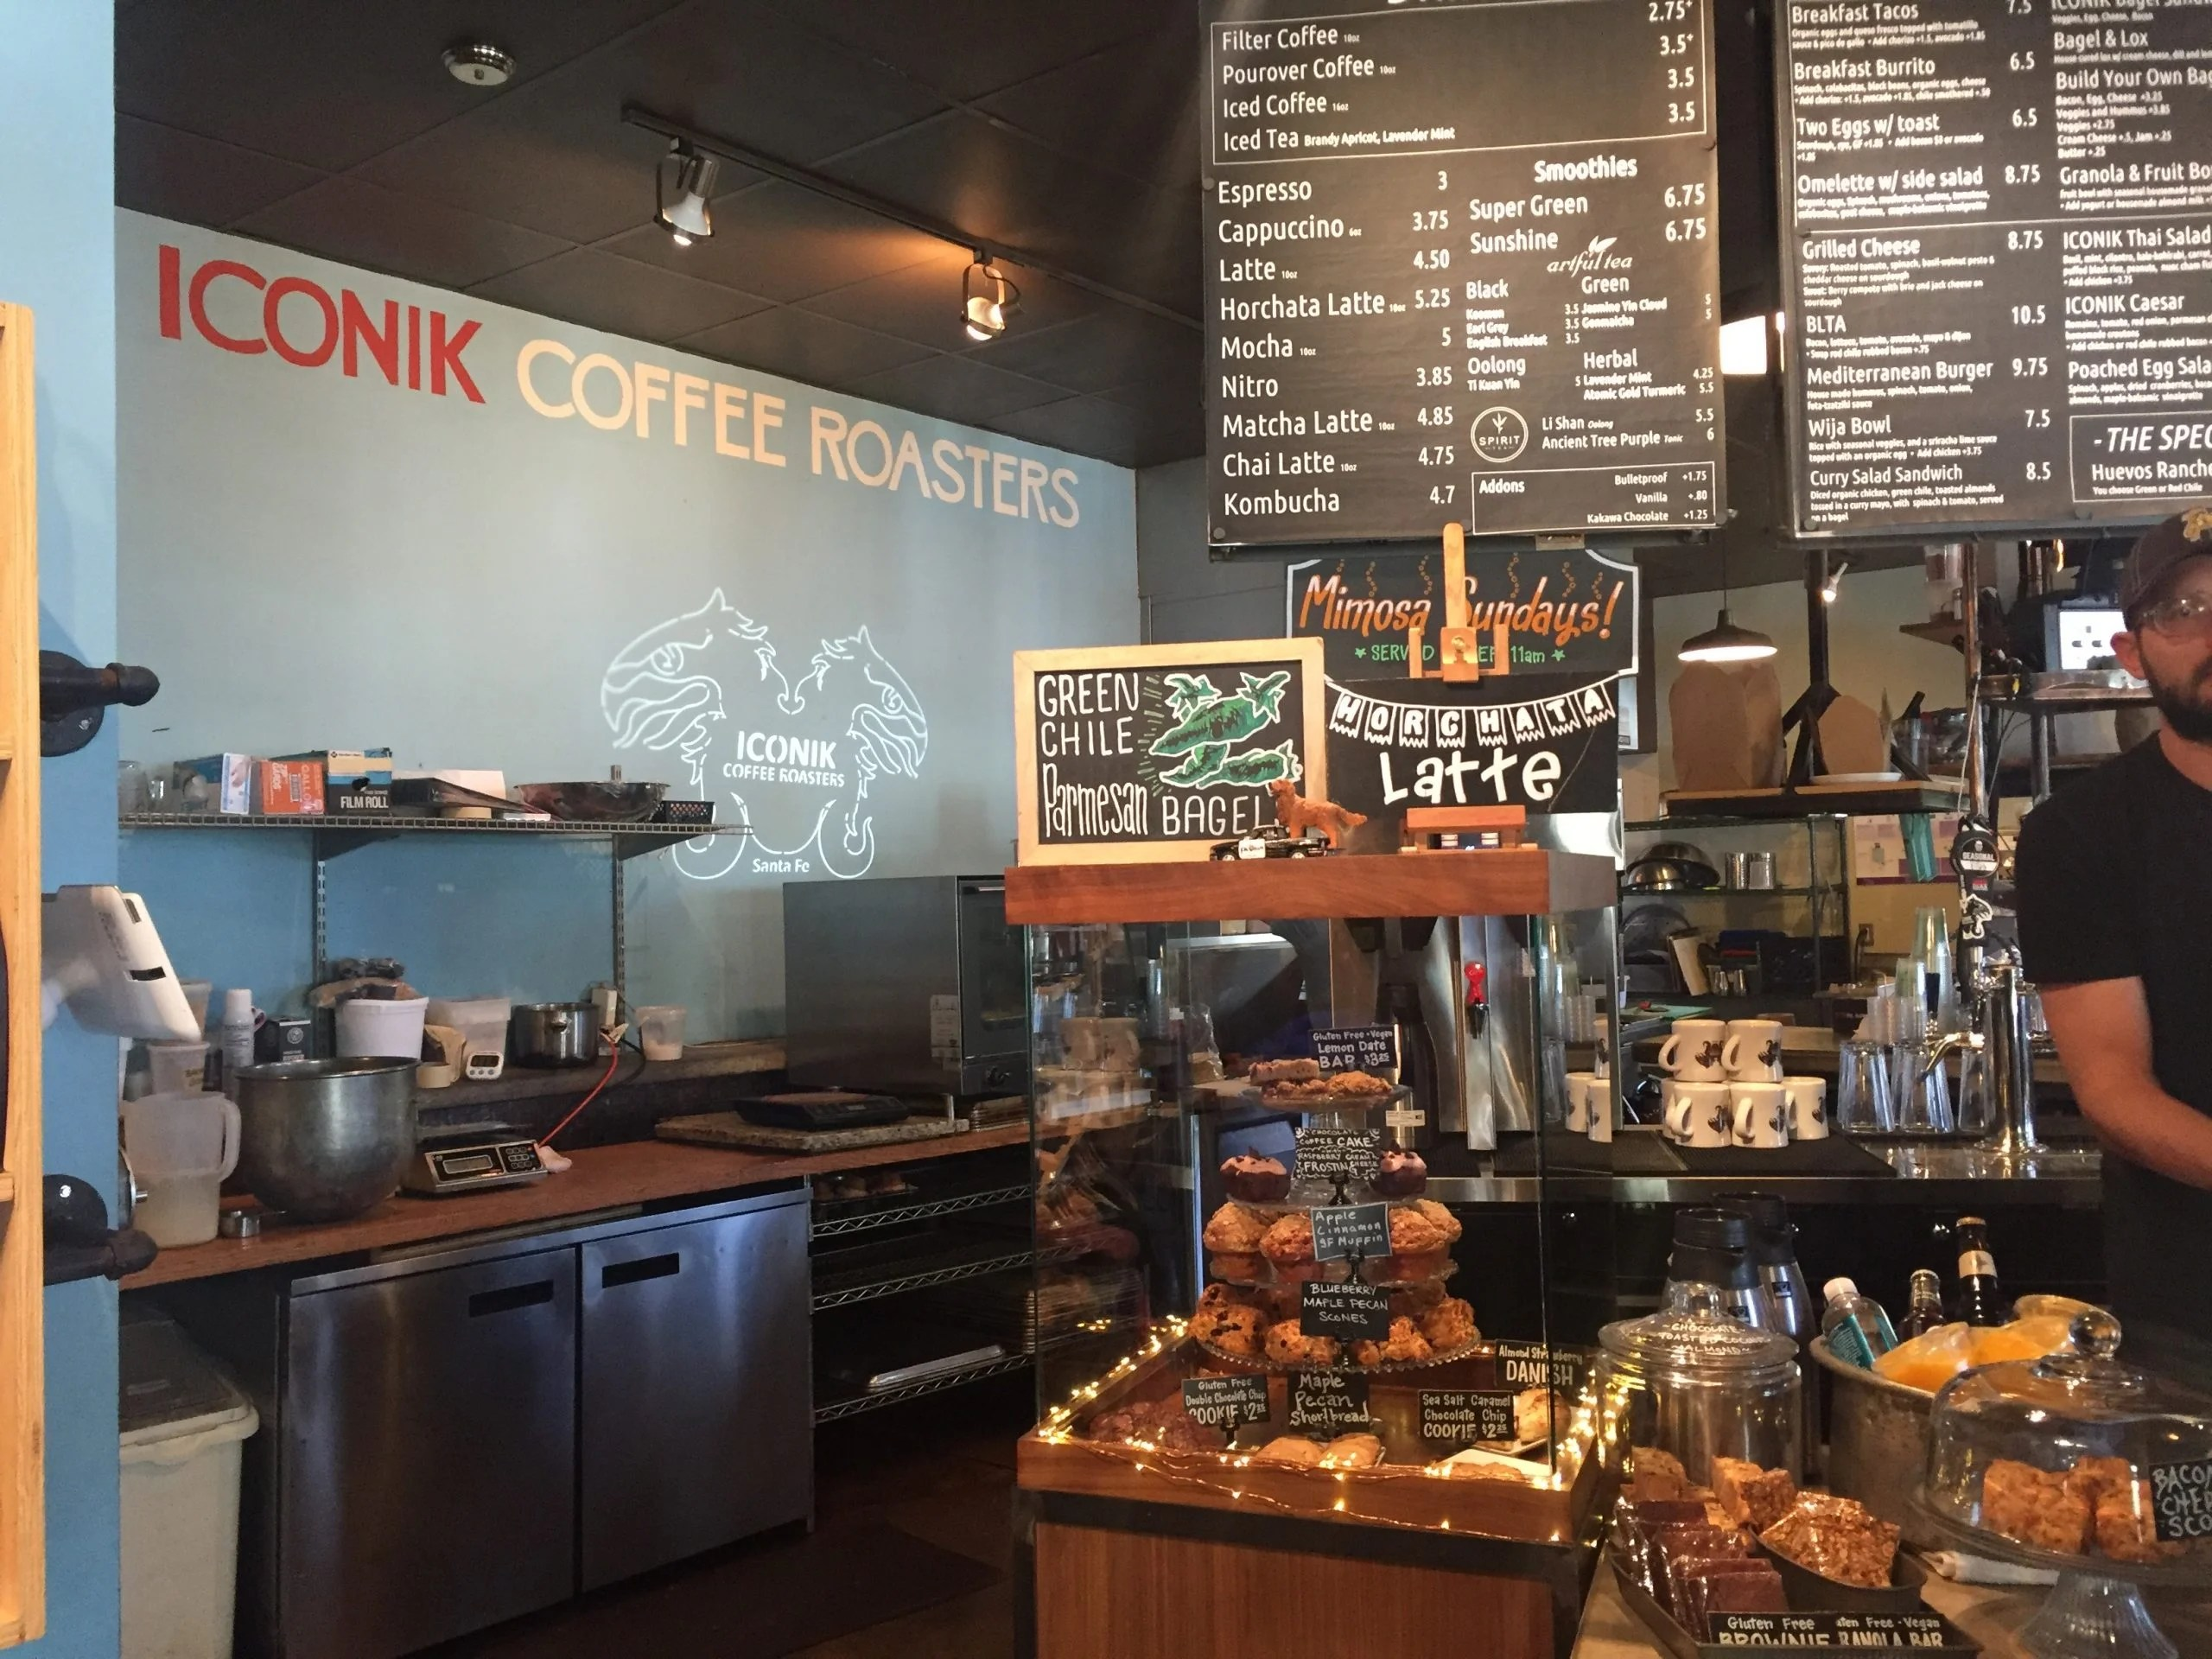 the menu at iconik coffee roasters in Santa Fe, New Mexico